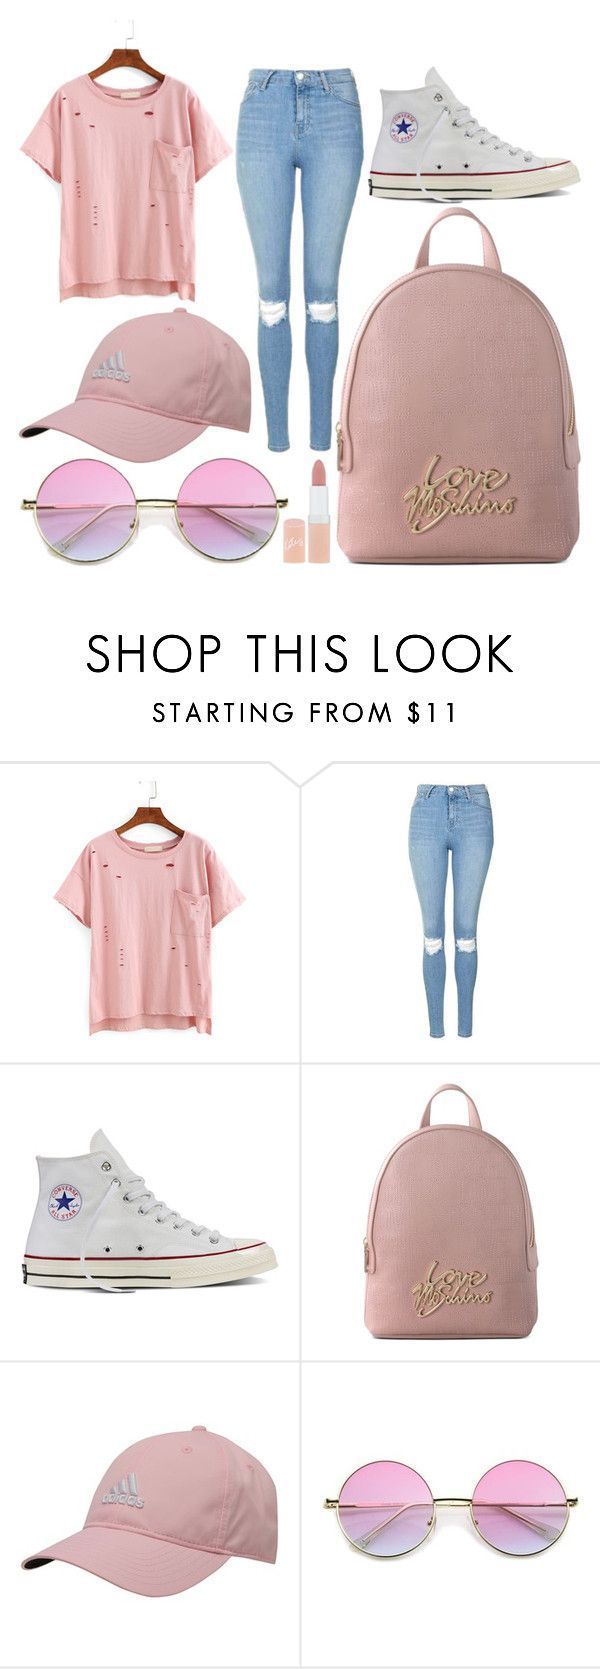 """""""School Day"""" by susanna-trad on Polyvore featuring Topshop, Converse, Love Moschino, adidas and Rimmel"""